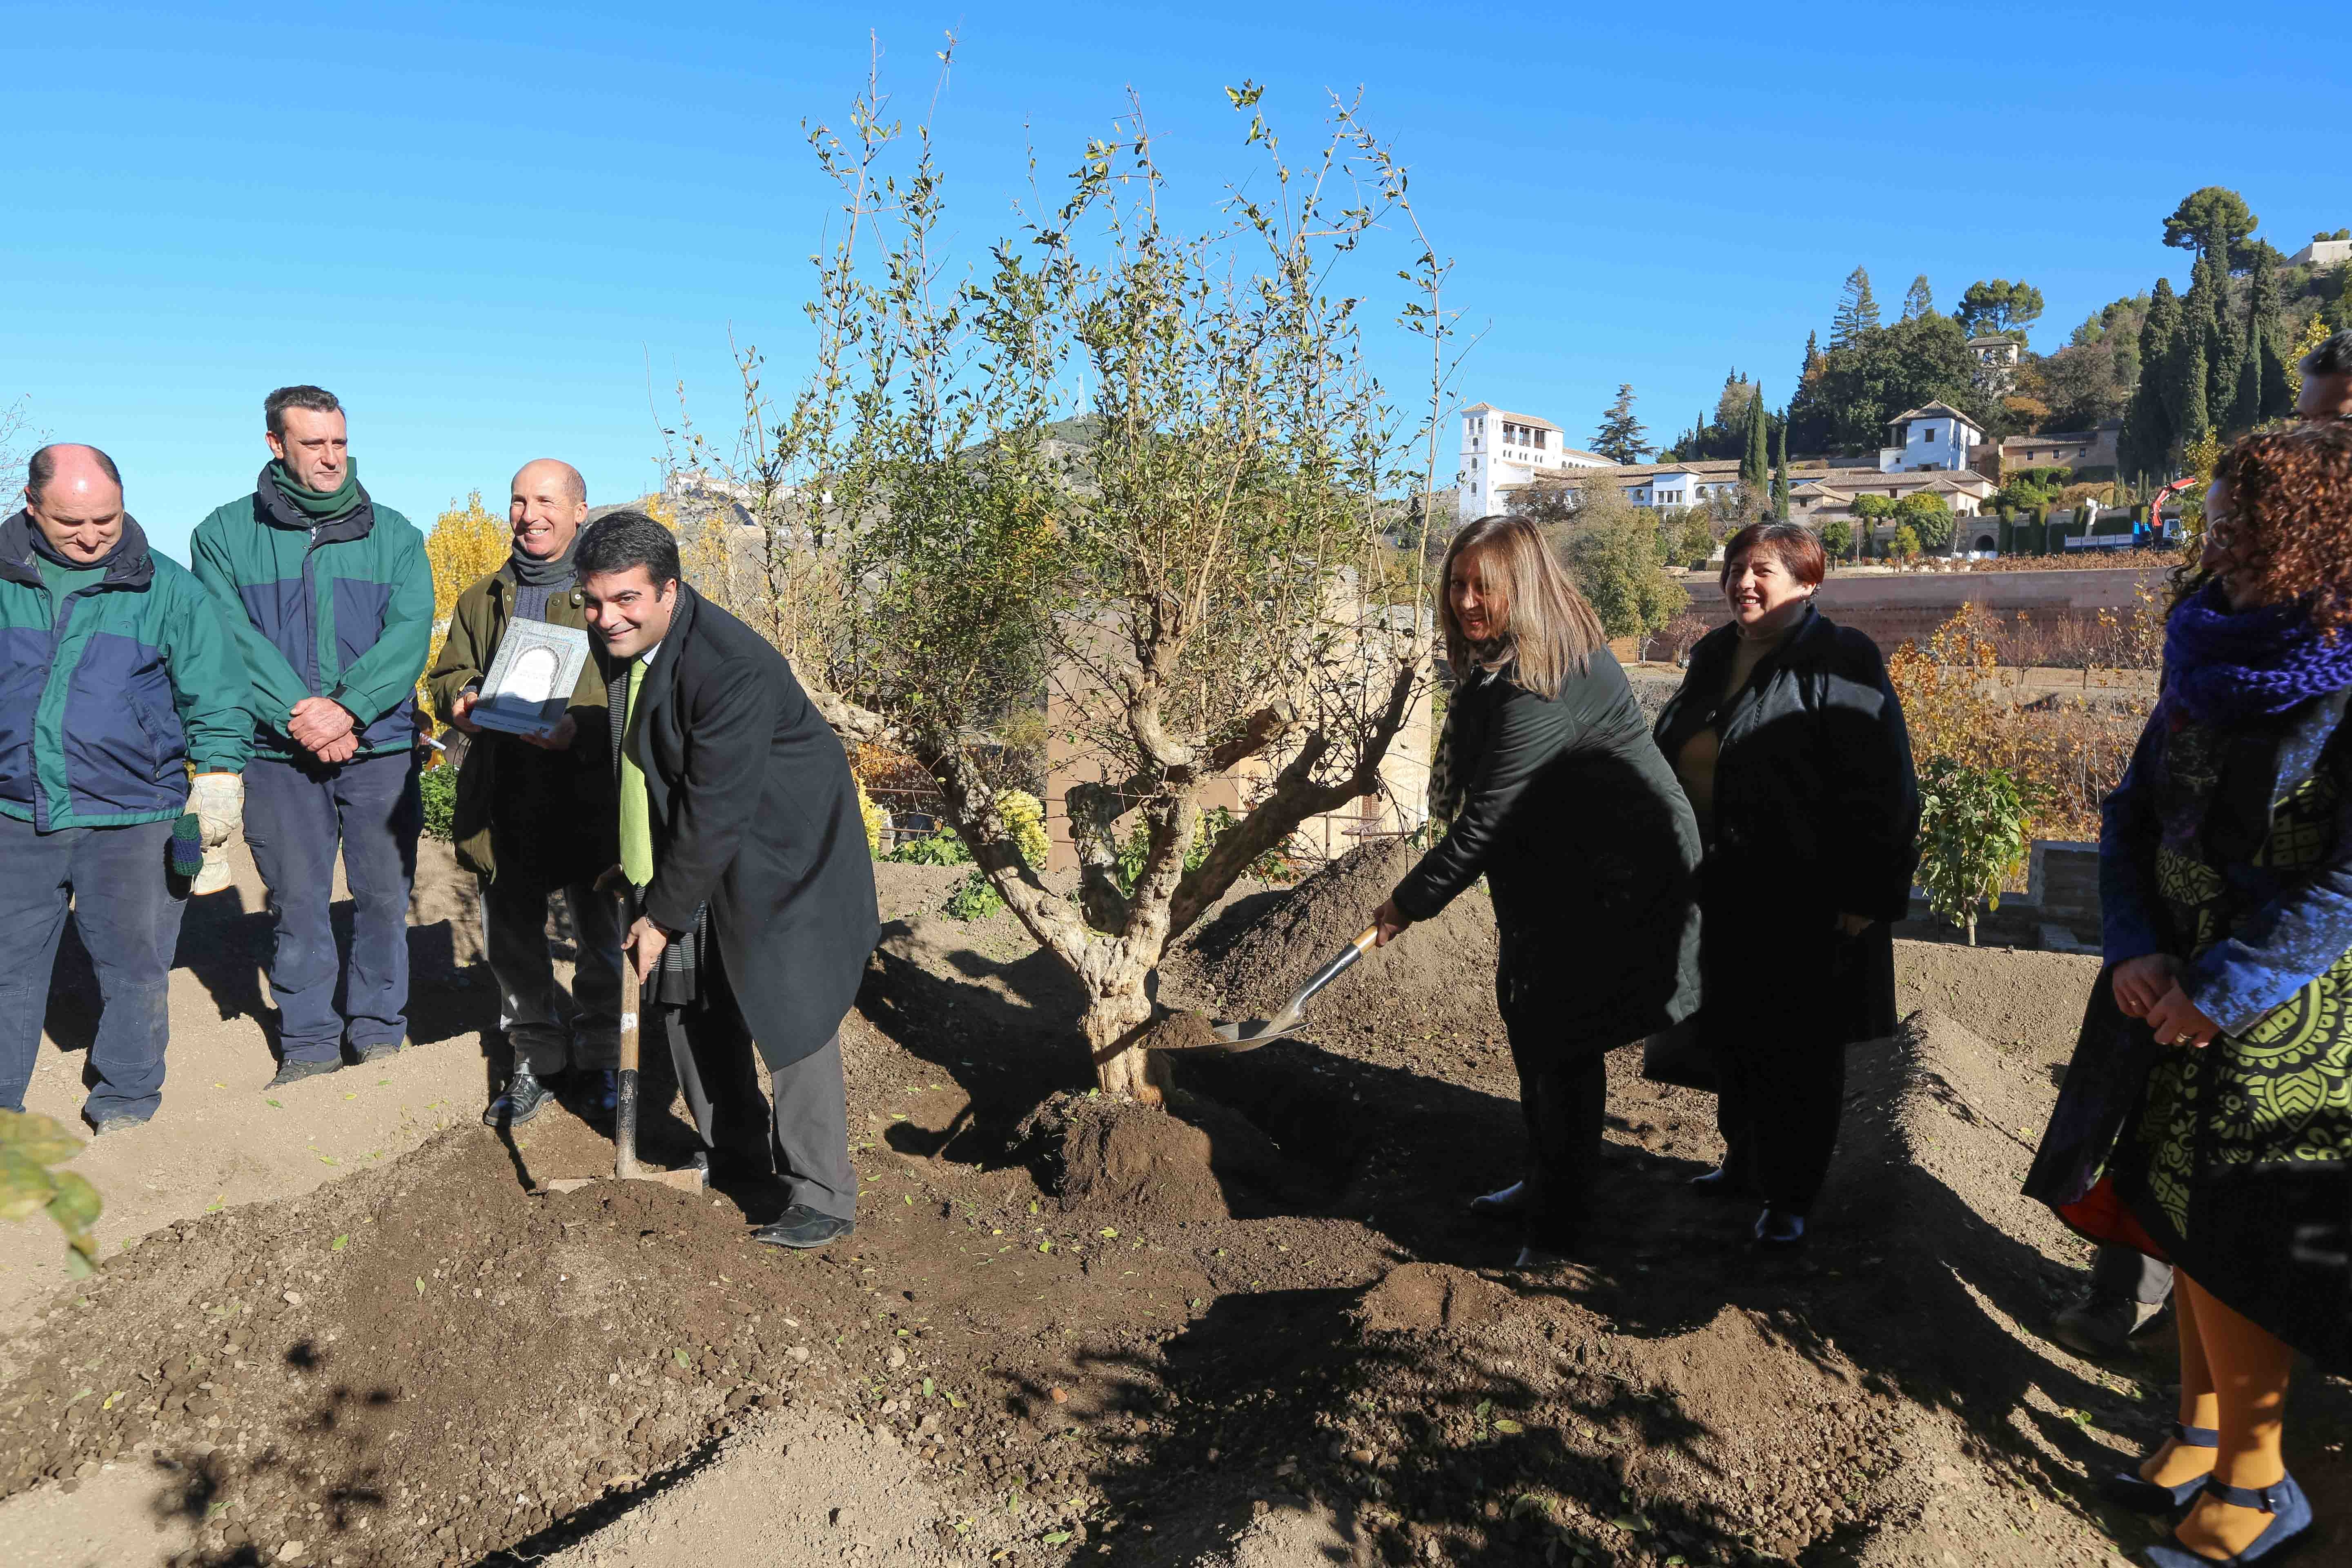 A pomegranate tree is planted in the Alhambra in memory of the Loja poet Ibn al-Khatib